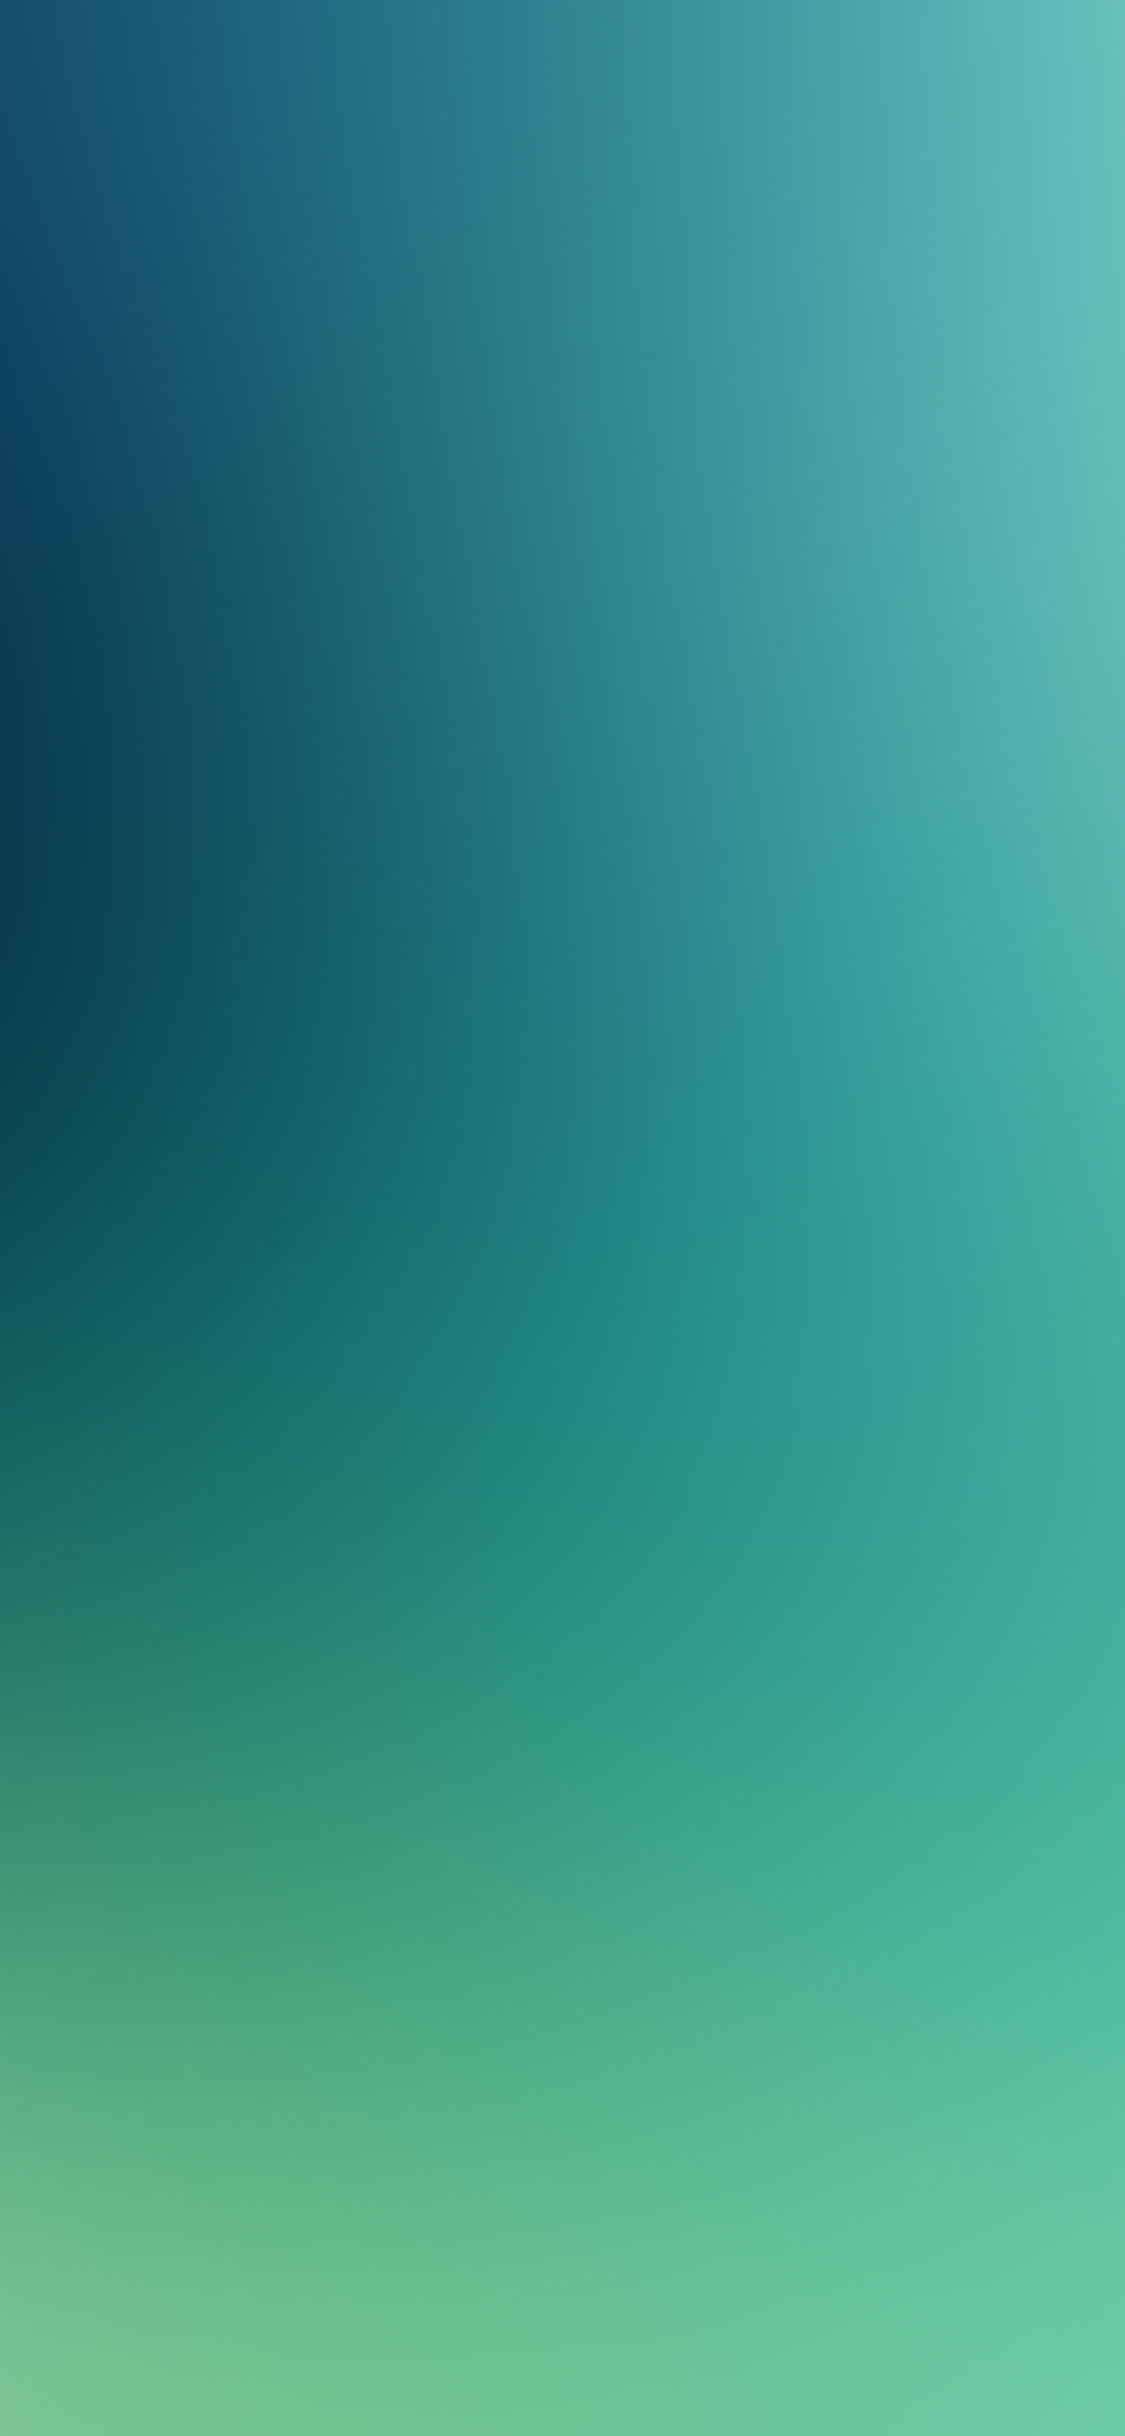 iPhoneXpapers.com-Apple-iPhone-wallpaper-sd57-green-hand-wash-gradation-blur